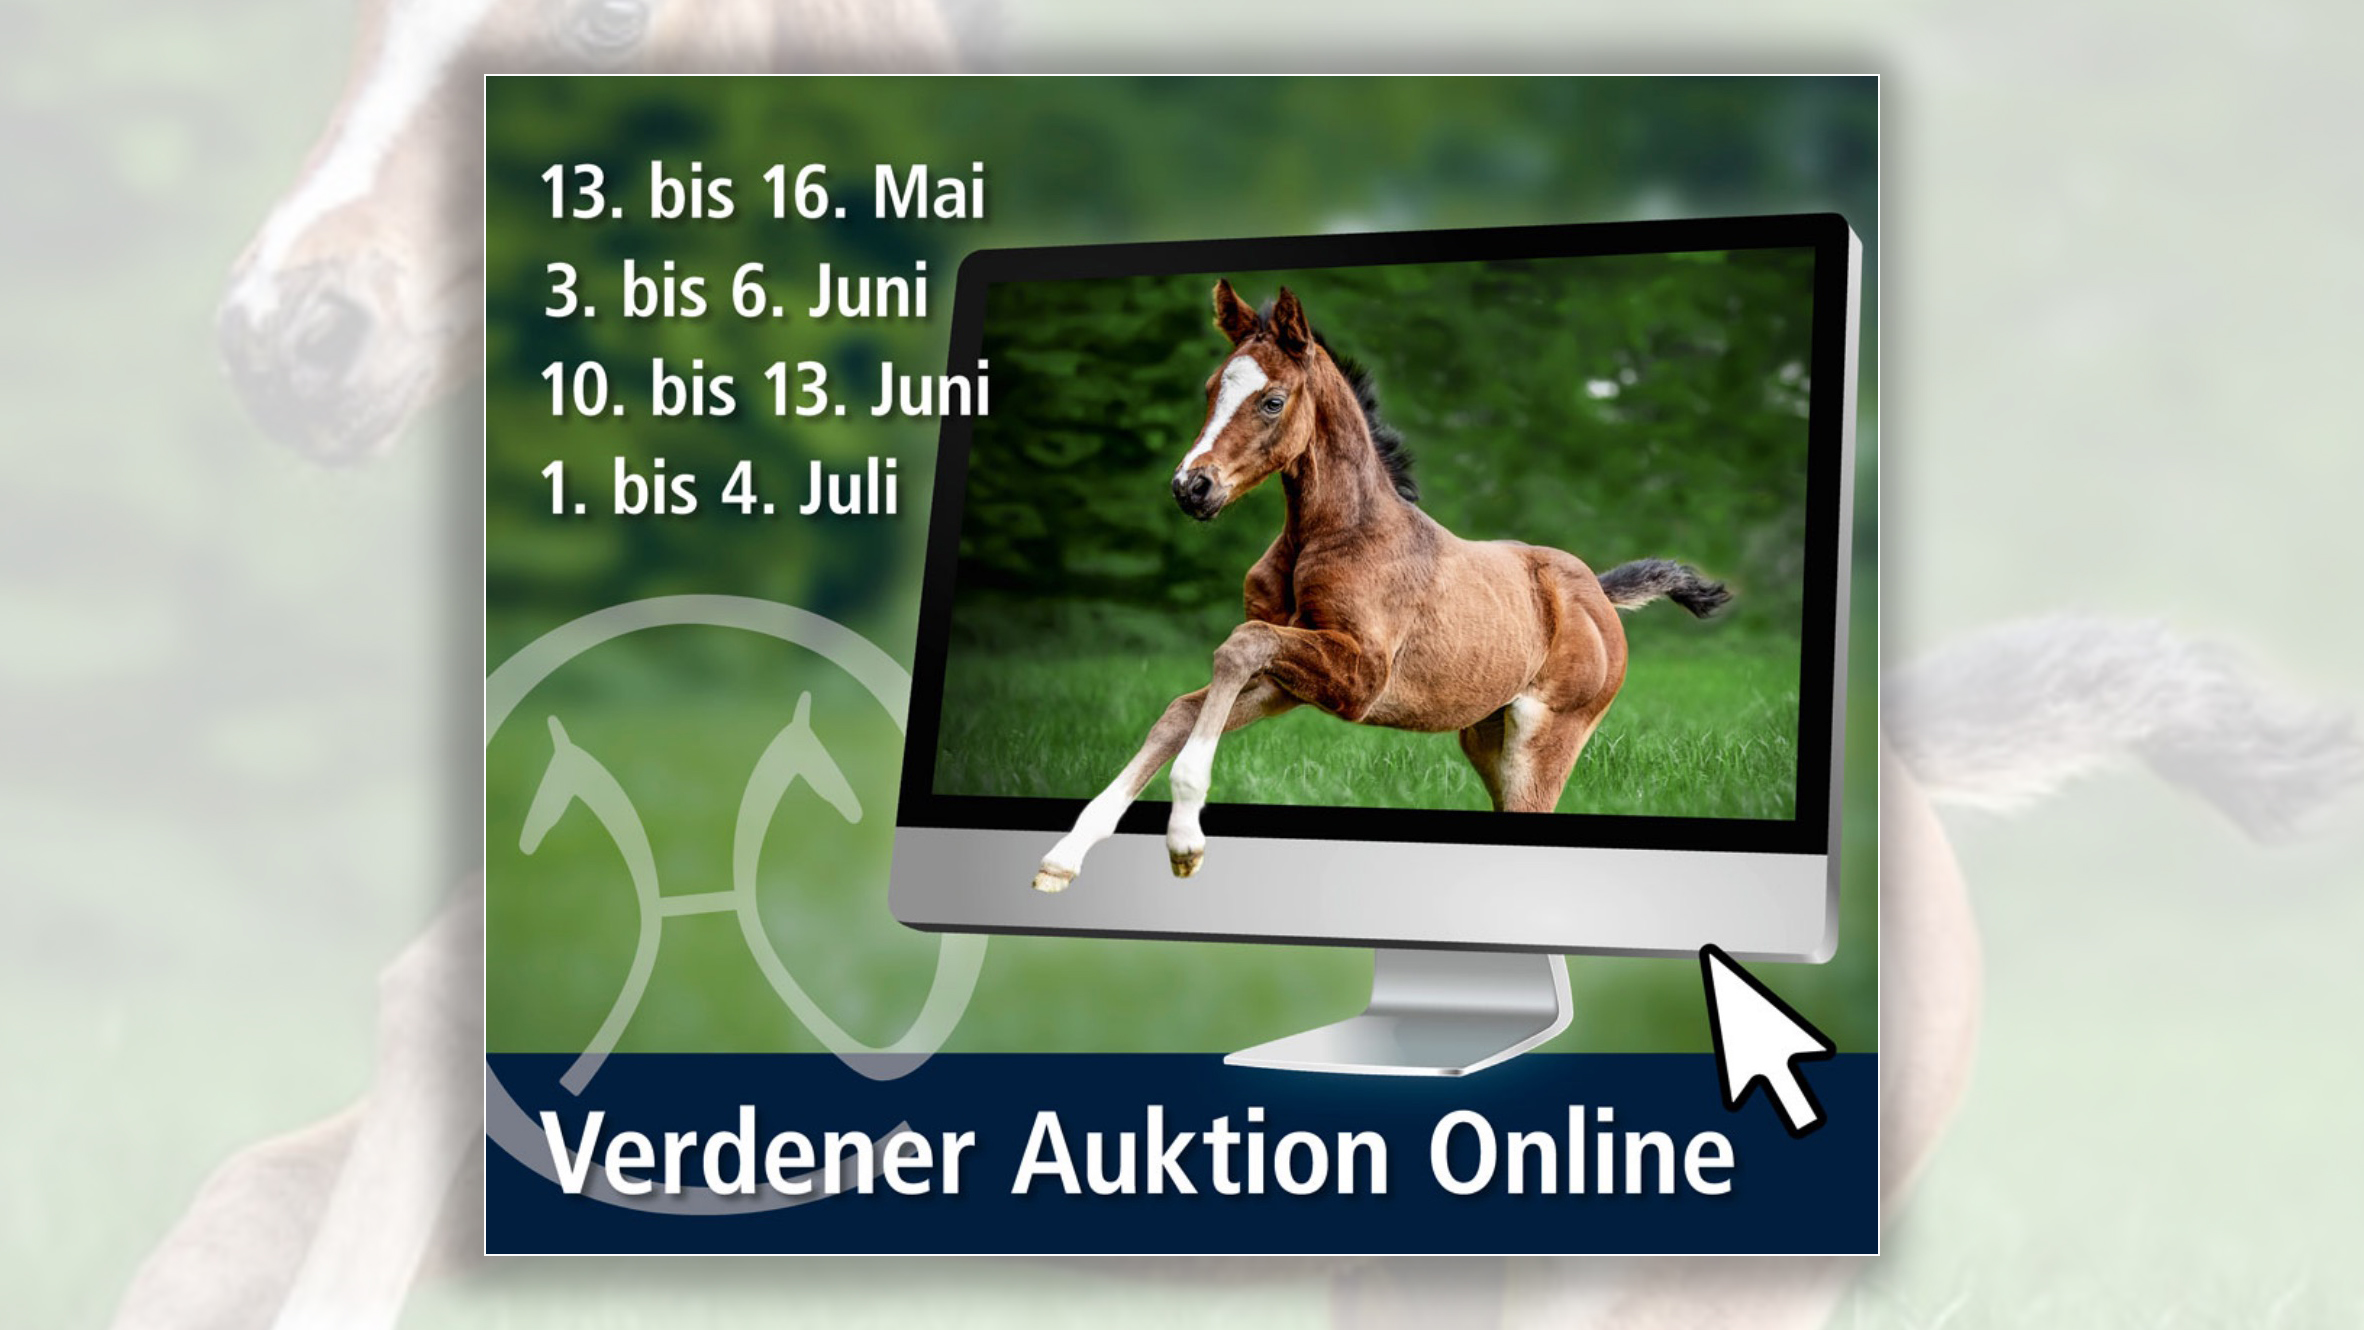 From May to July, customers and friends of the Hannoveraner horse will have the opportunity to buy selected foals at a total of four online auctions